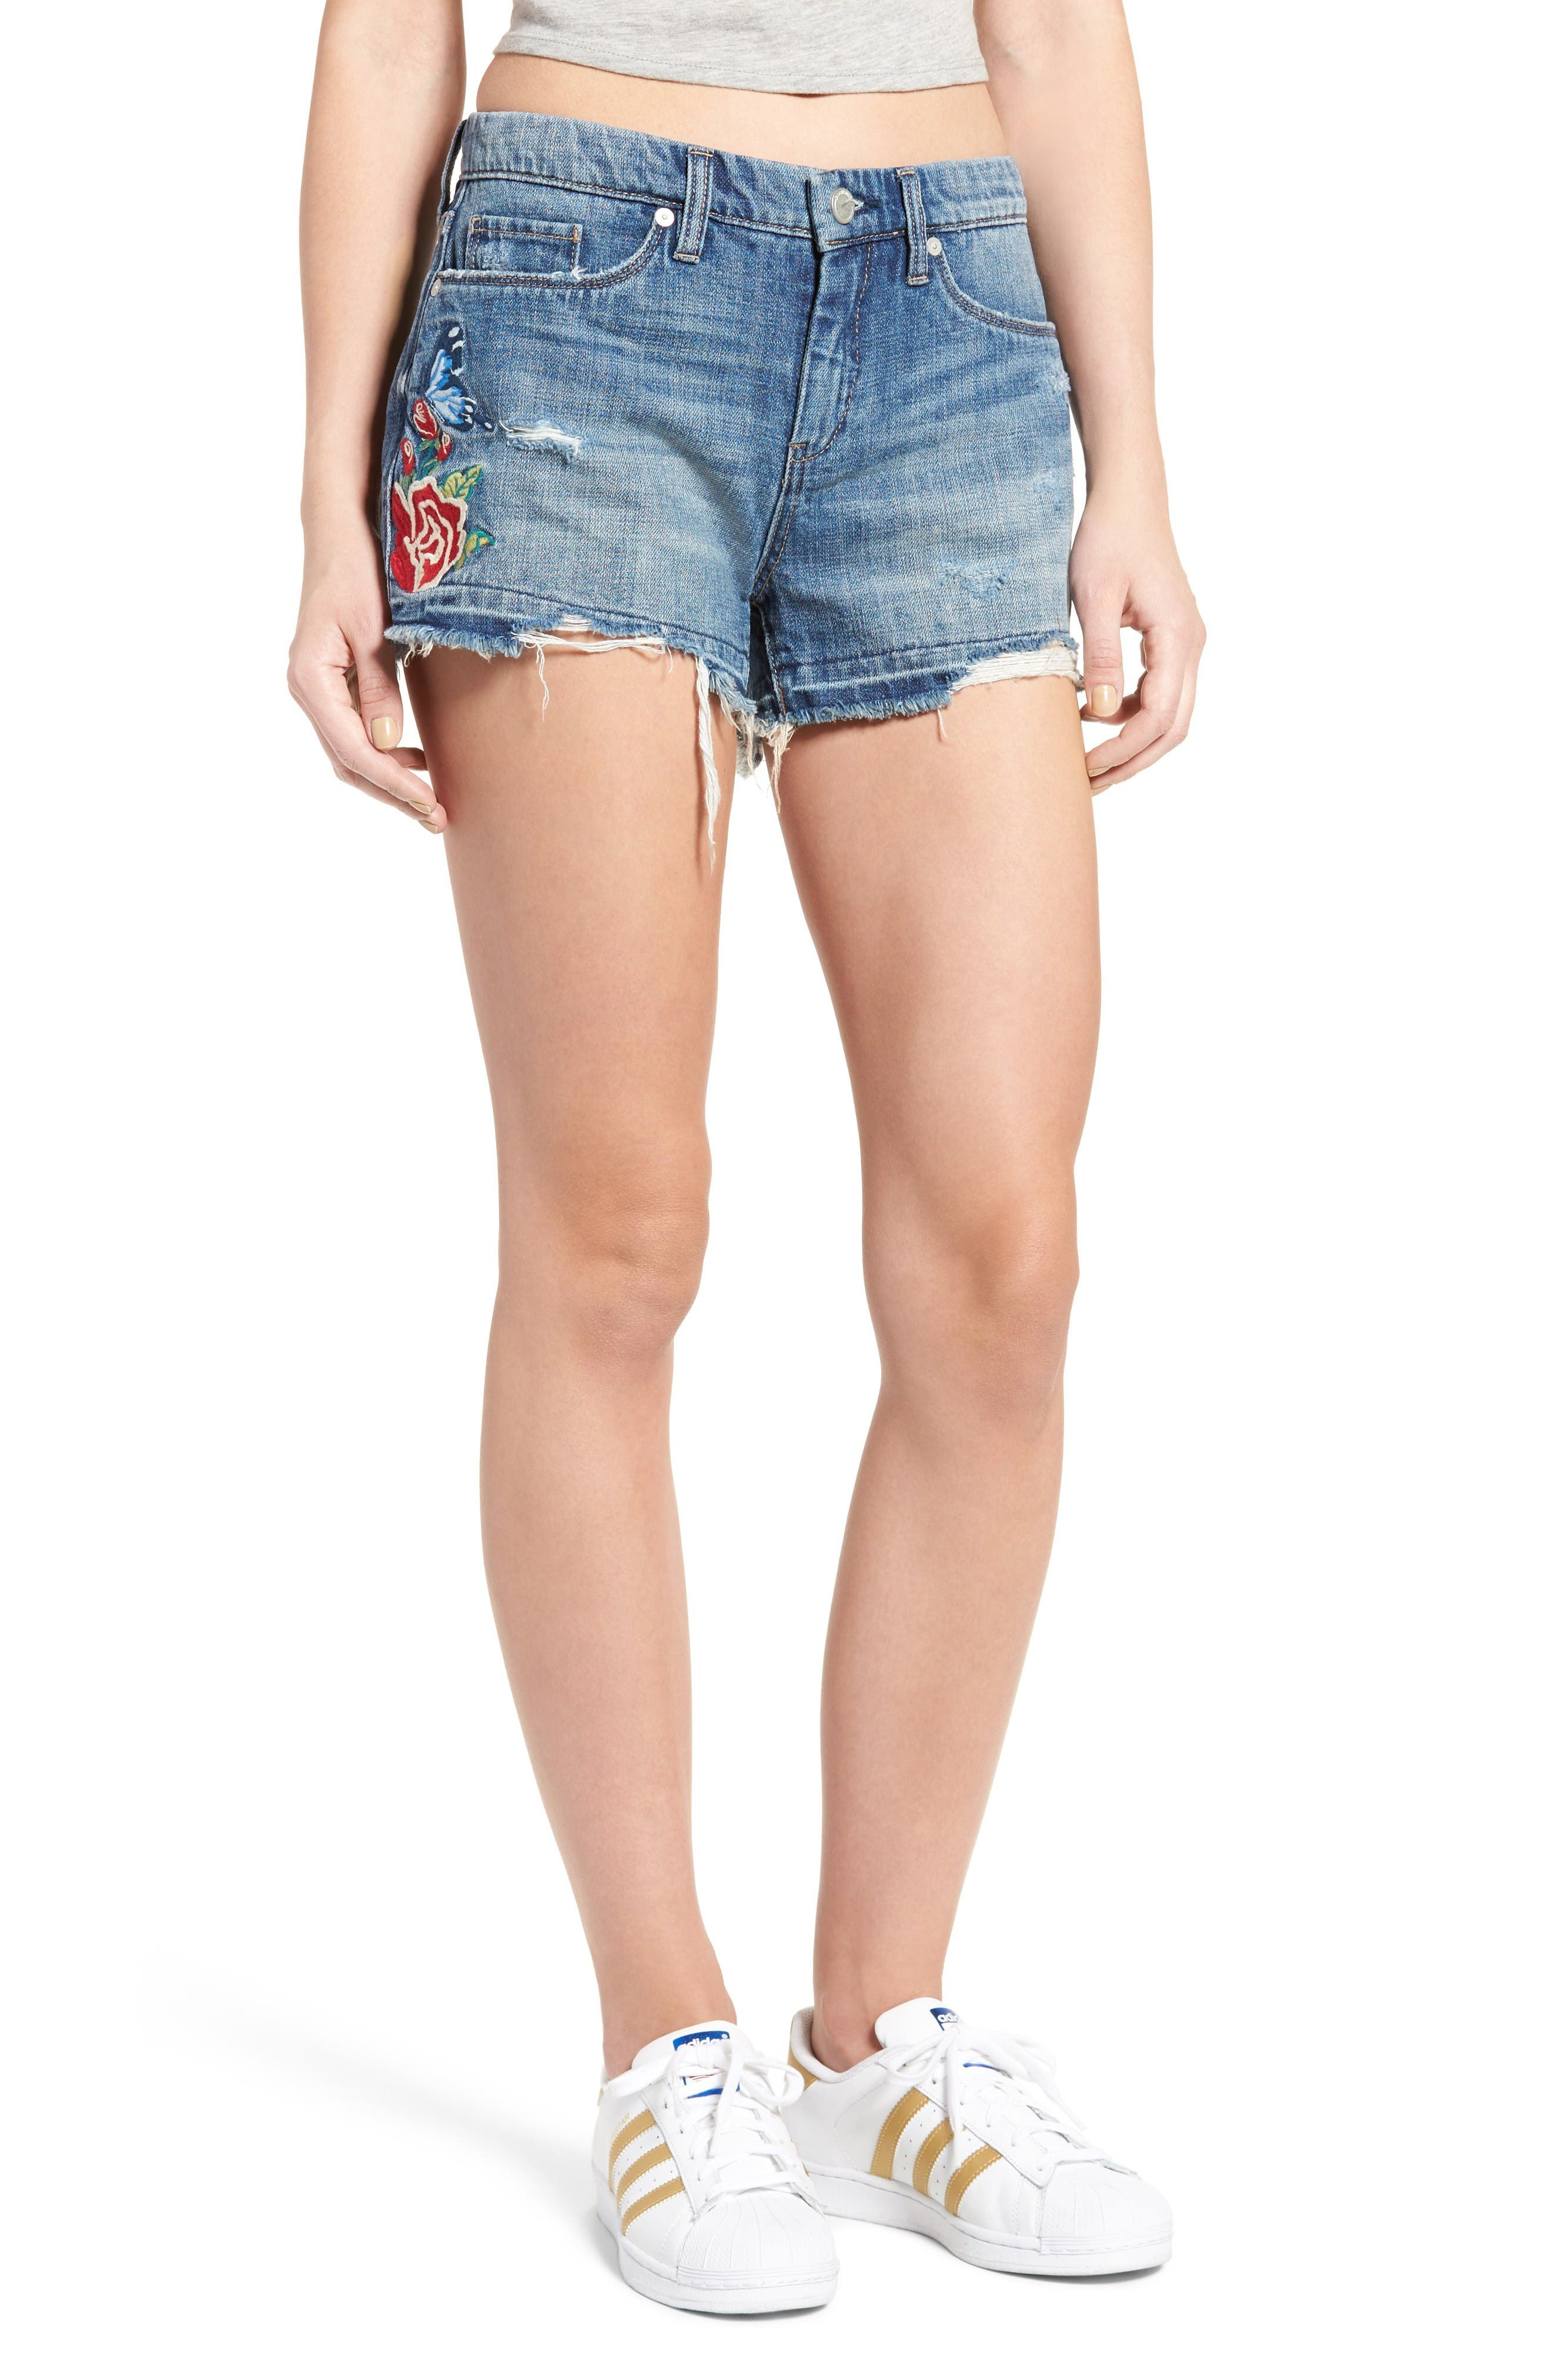 Alternate Image 1 Selected - BLANKNYC Embroidered Denim Shorts (Whild Child)